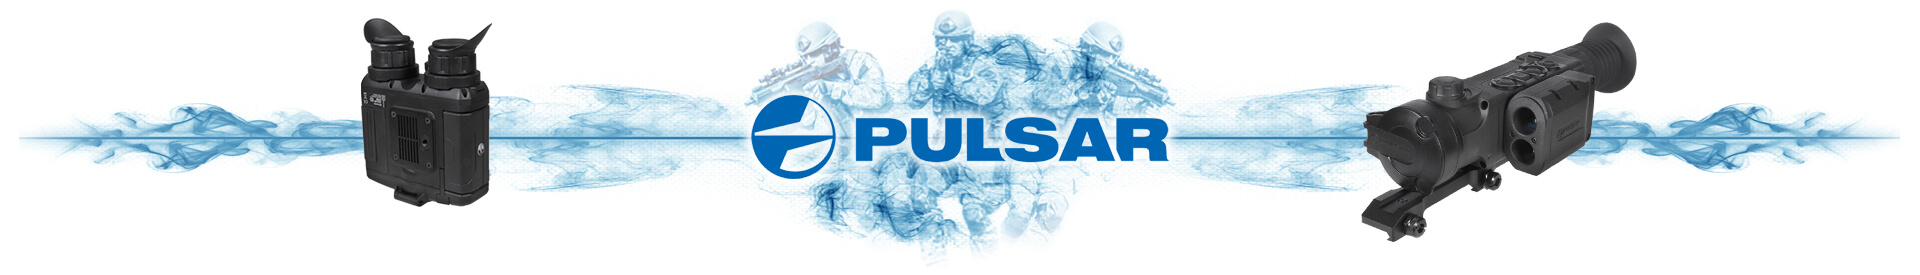 Pulsar Thermal Riflescopes & Optics